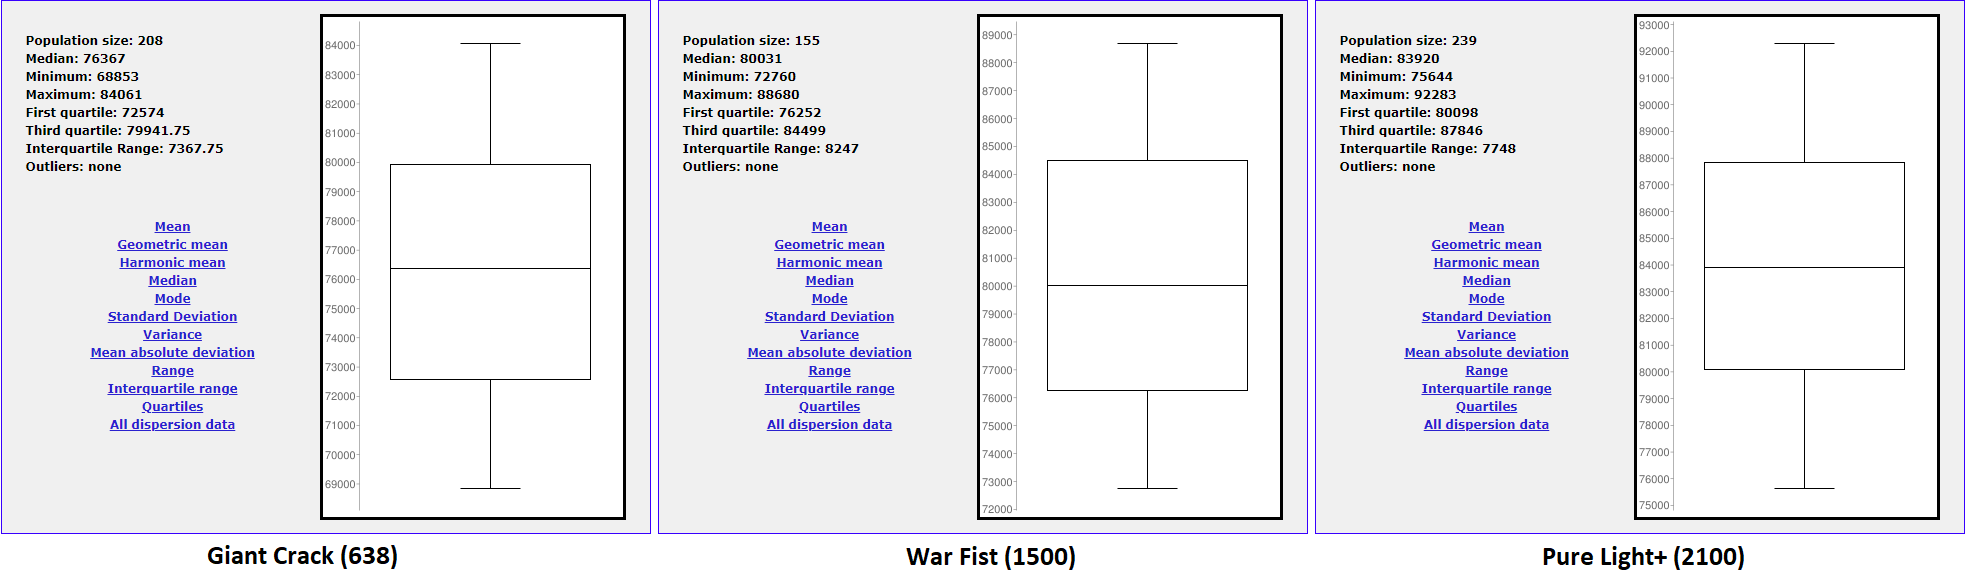 0_1604441254182_Box Plot Comparisons.png